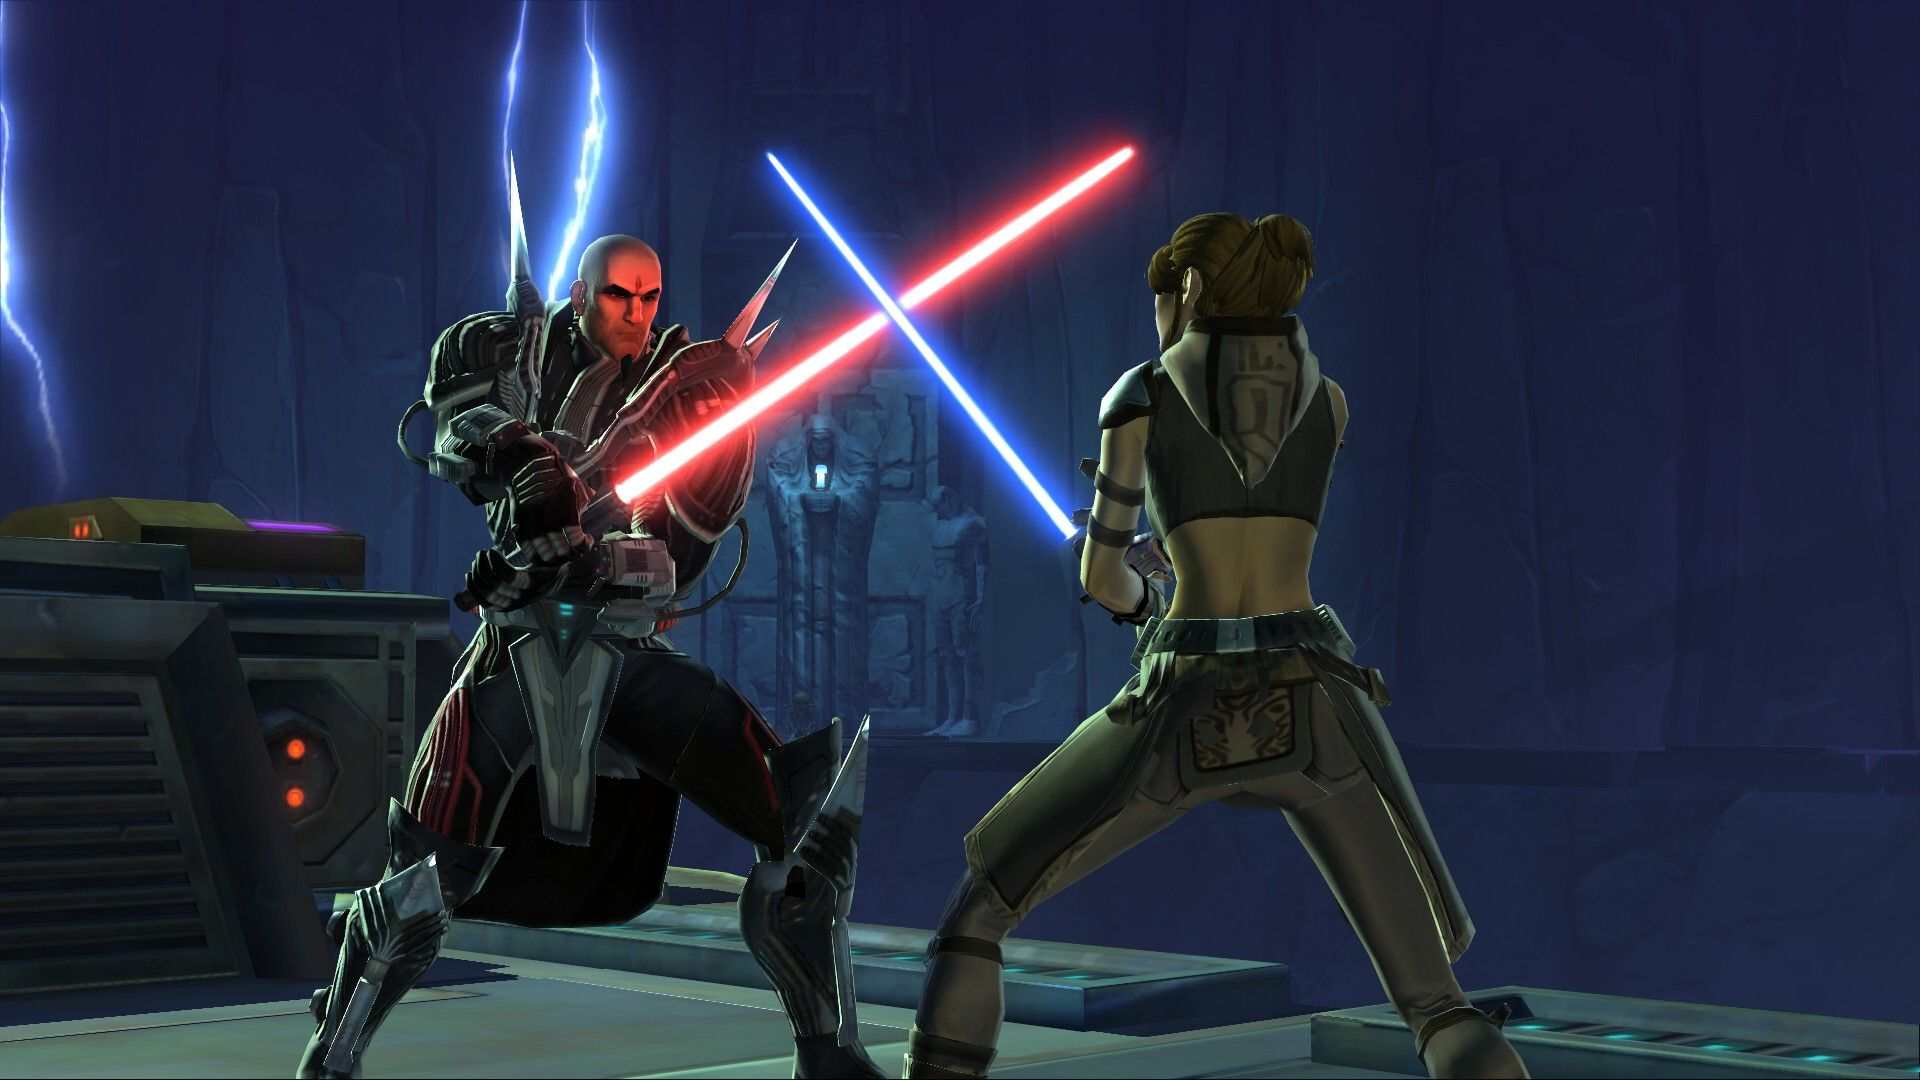 star wars: the old republic is only days away from early access